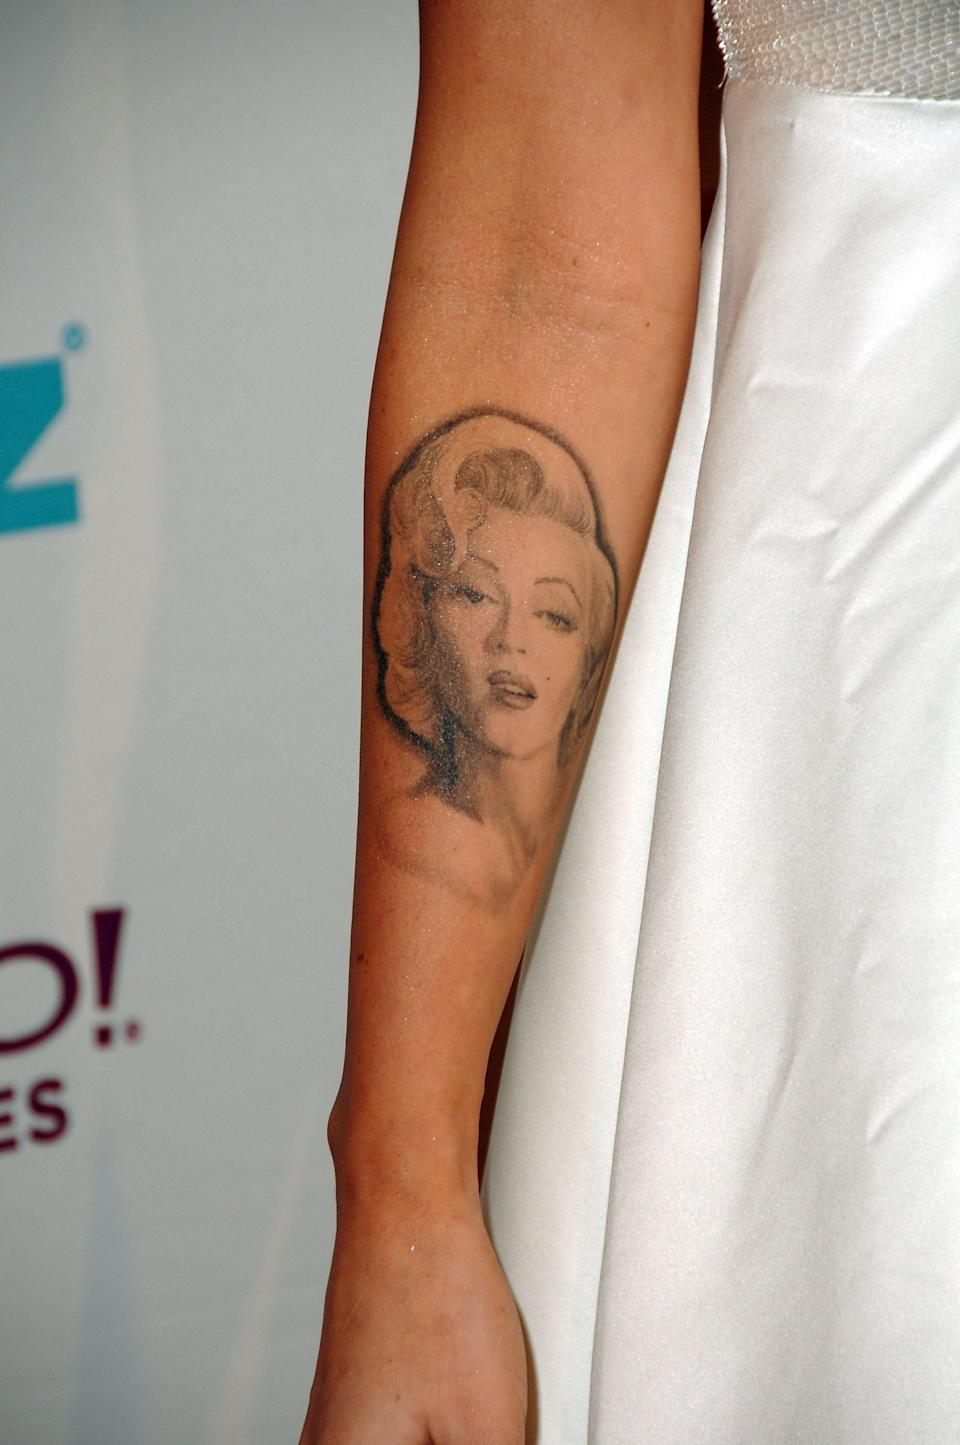 <p>Perhaps Fox's most well-known tattoo is her portrait of Marilyn Monroe. Located on the inside of her right arm, Fox got the ink when she was 18 years old because she idolized the icon. However, in 2011, Fox decided to get it removed (more on that later). </p>